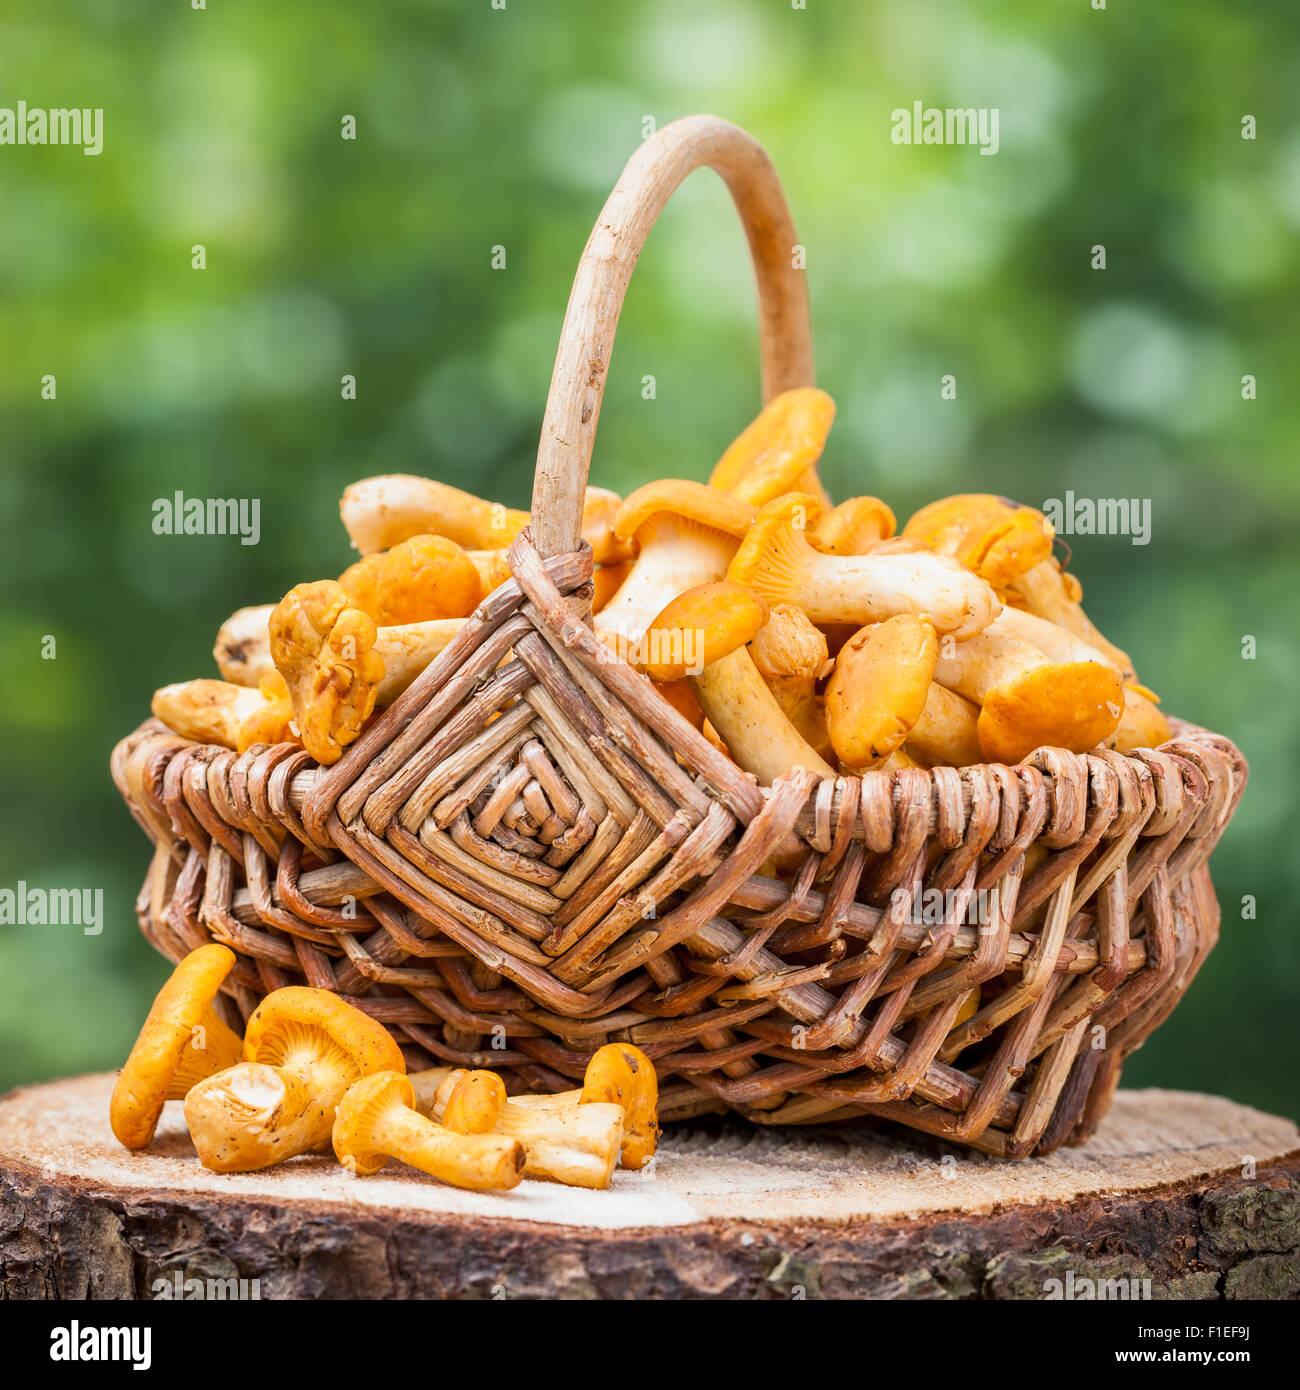 Chanterelles in wicker basket on wooden stump in forest - Stock Image